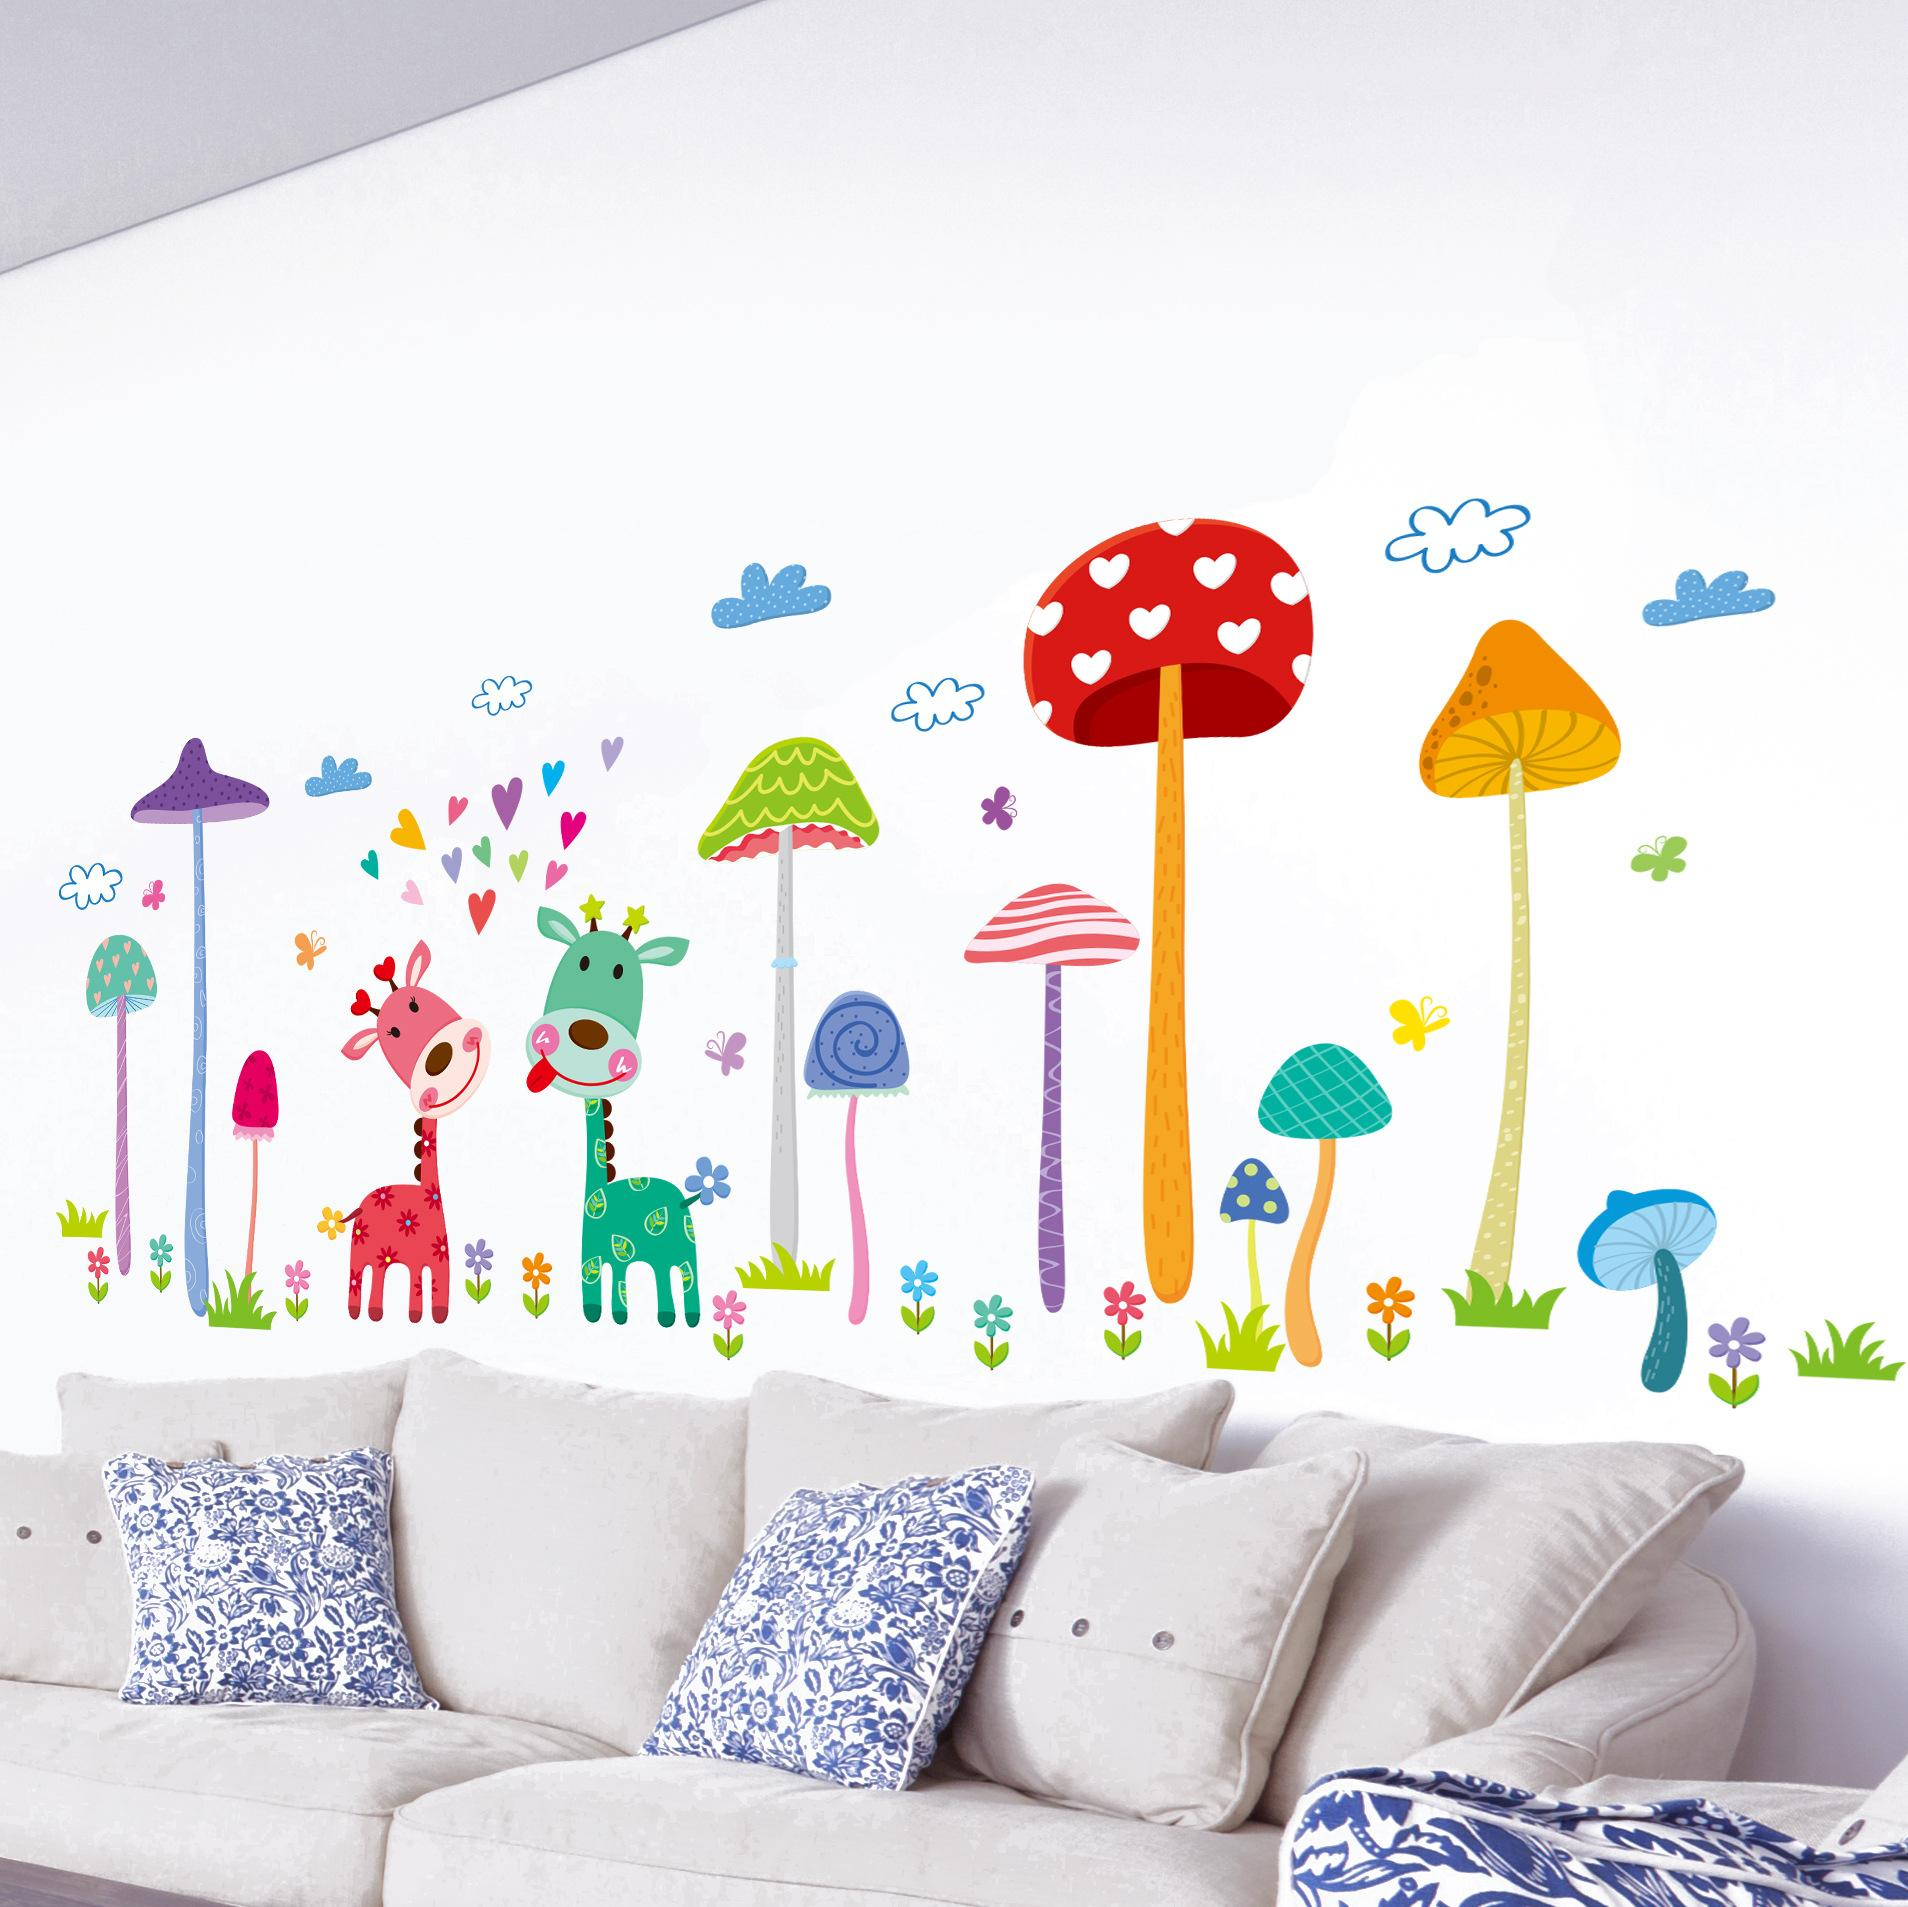 Merveilleux Forest Mushroom Deer Home Wall Art Mural Decor Kids Babies Room Nursery  Lovely Animals Family Wallpaper Decoration Decal Wall Applique Large  Removable Wall ...